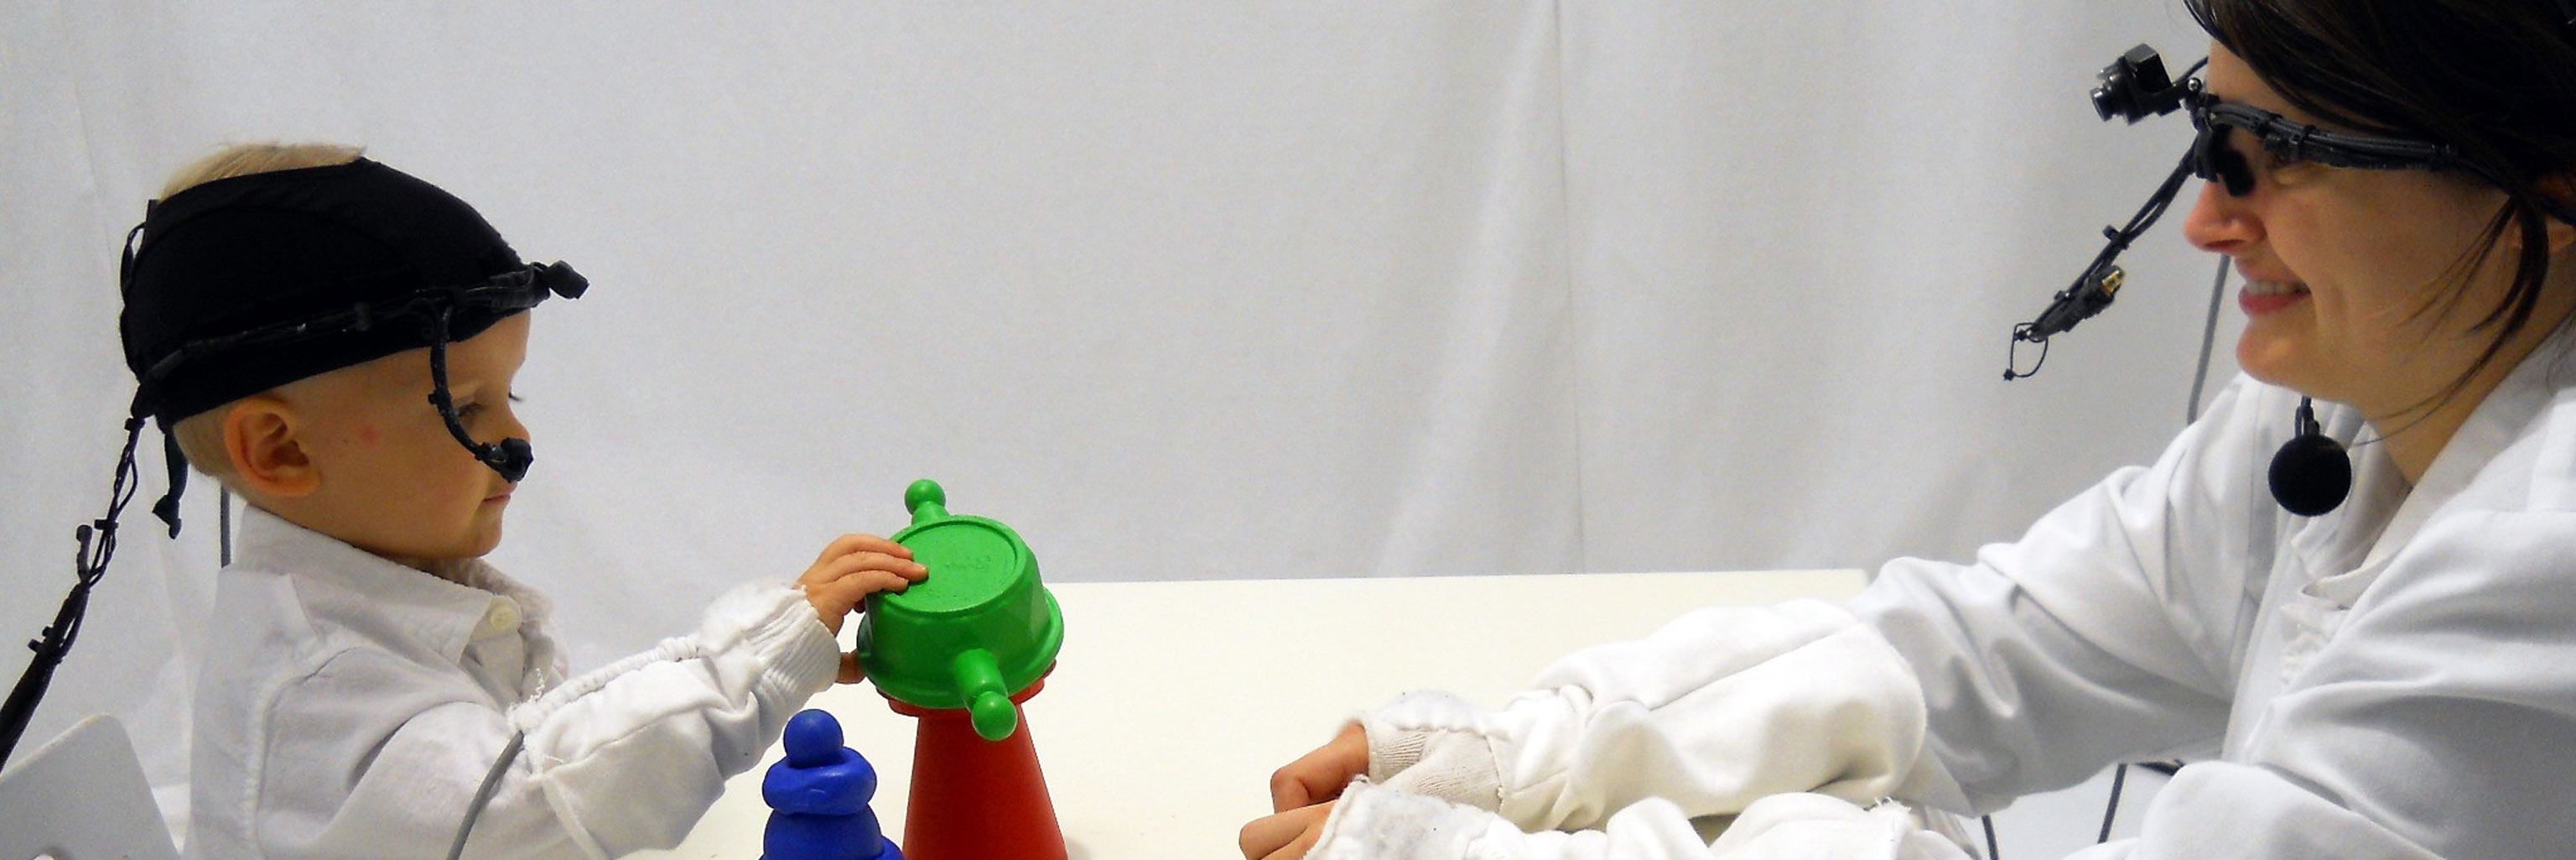 baby and woman playing with toys during an experiment